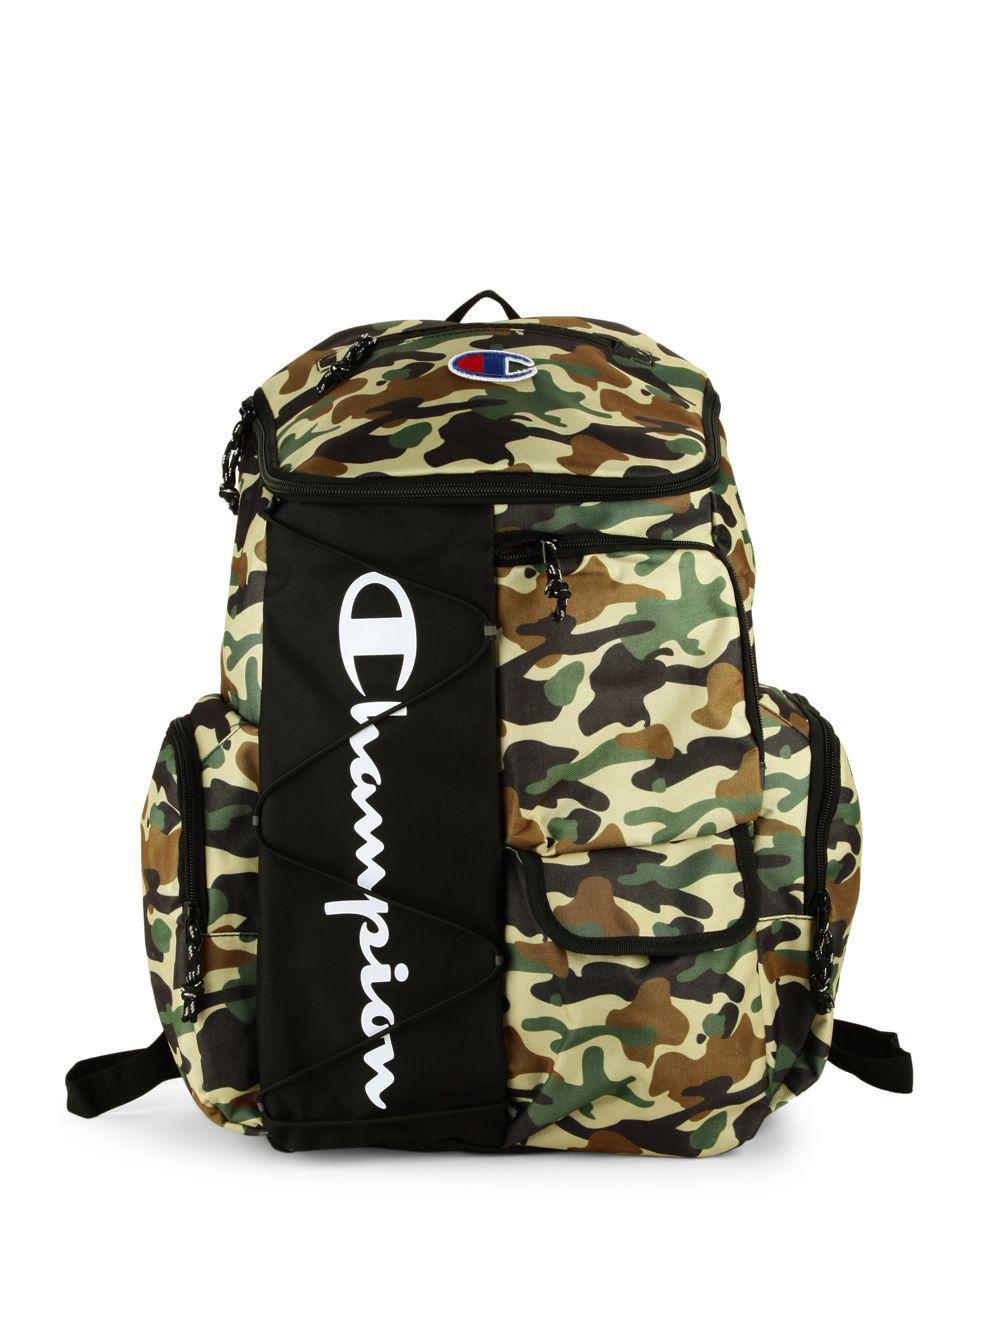 7ab3220894 Champion Forever Champ Utility Backpack in Green - Lyst